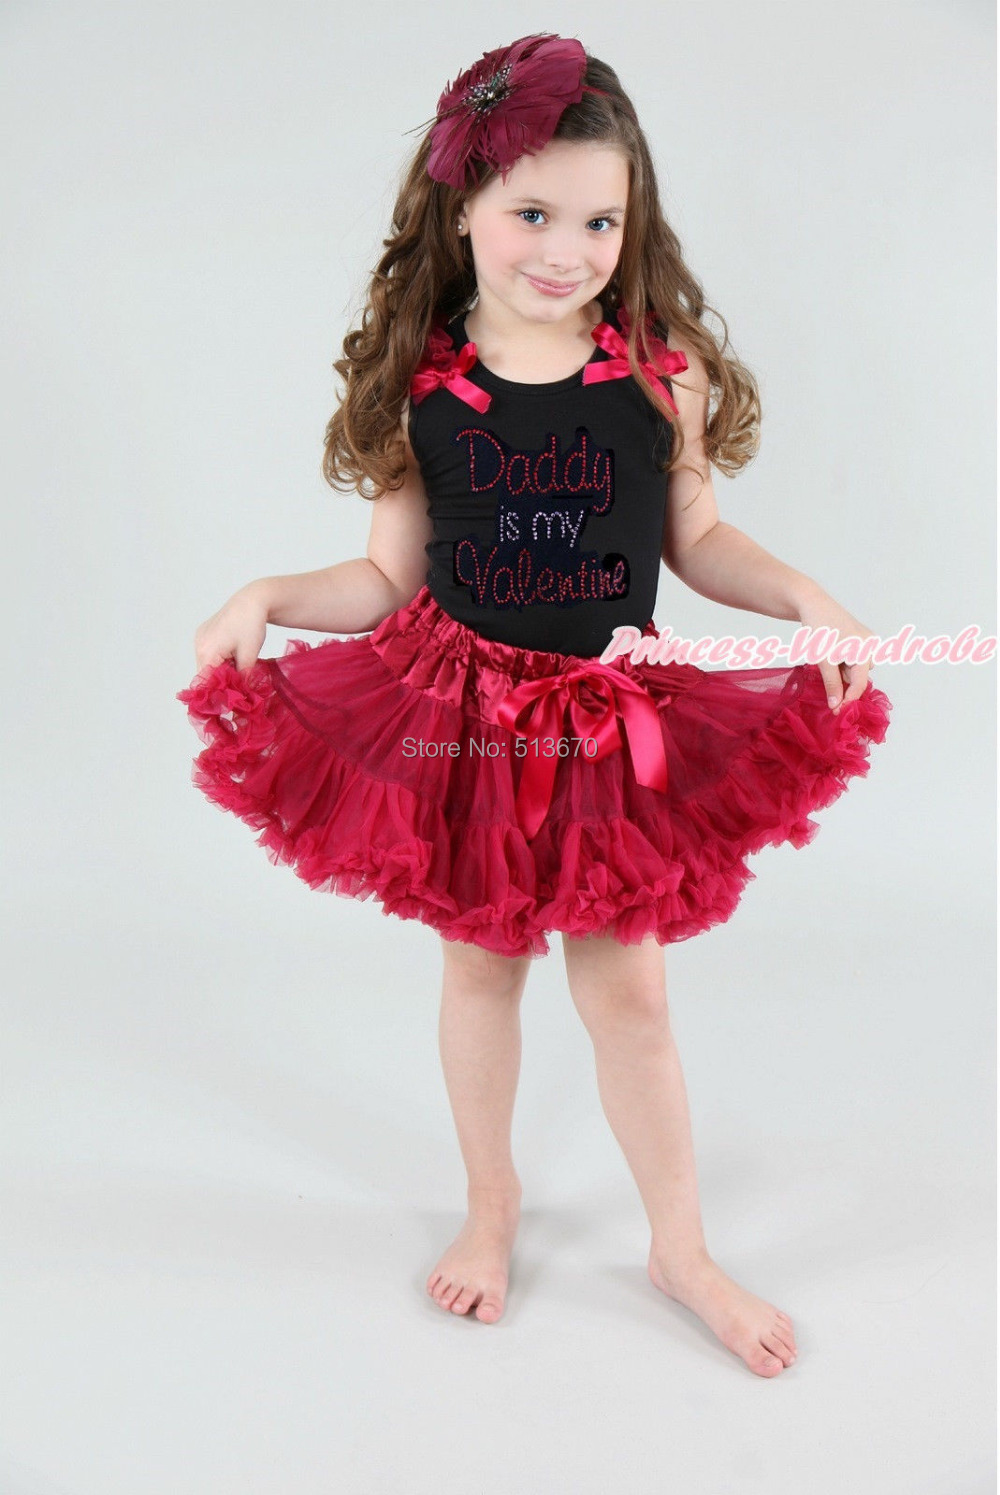 Rhinestone Daddy Is Valentine Black Pettitop Raspberry Wine Red Pettiskirt 1-8Y MAPSA0156 xmas red orange yellow black roses brown top baby girl pettiskirt outfit 1 8y mapsa0038